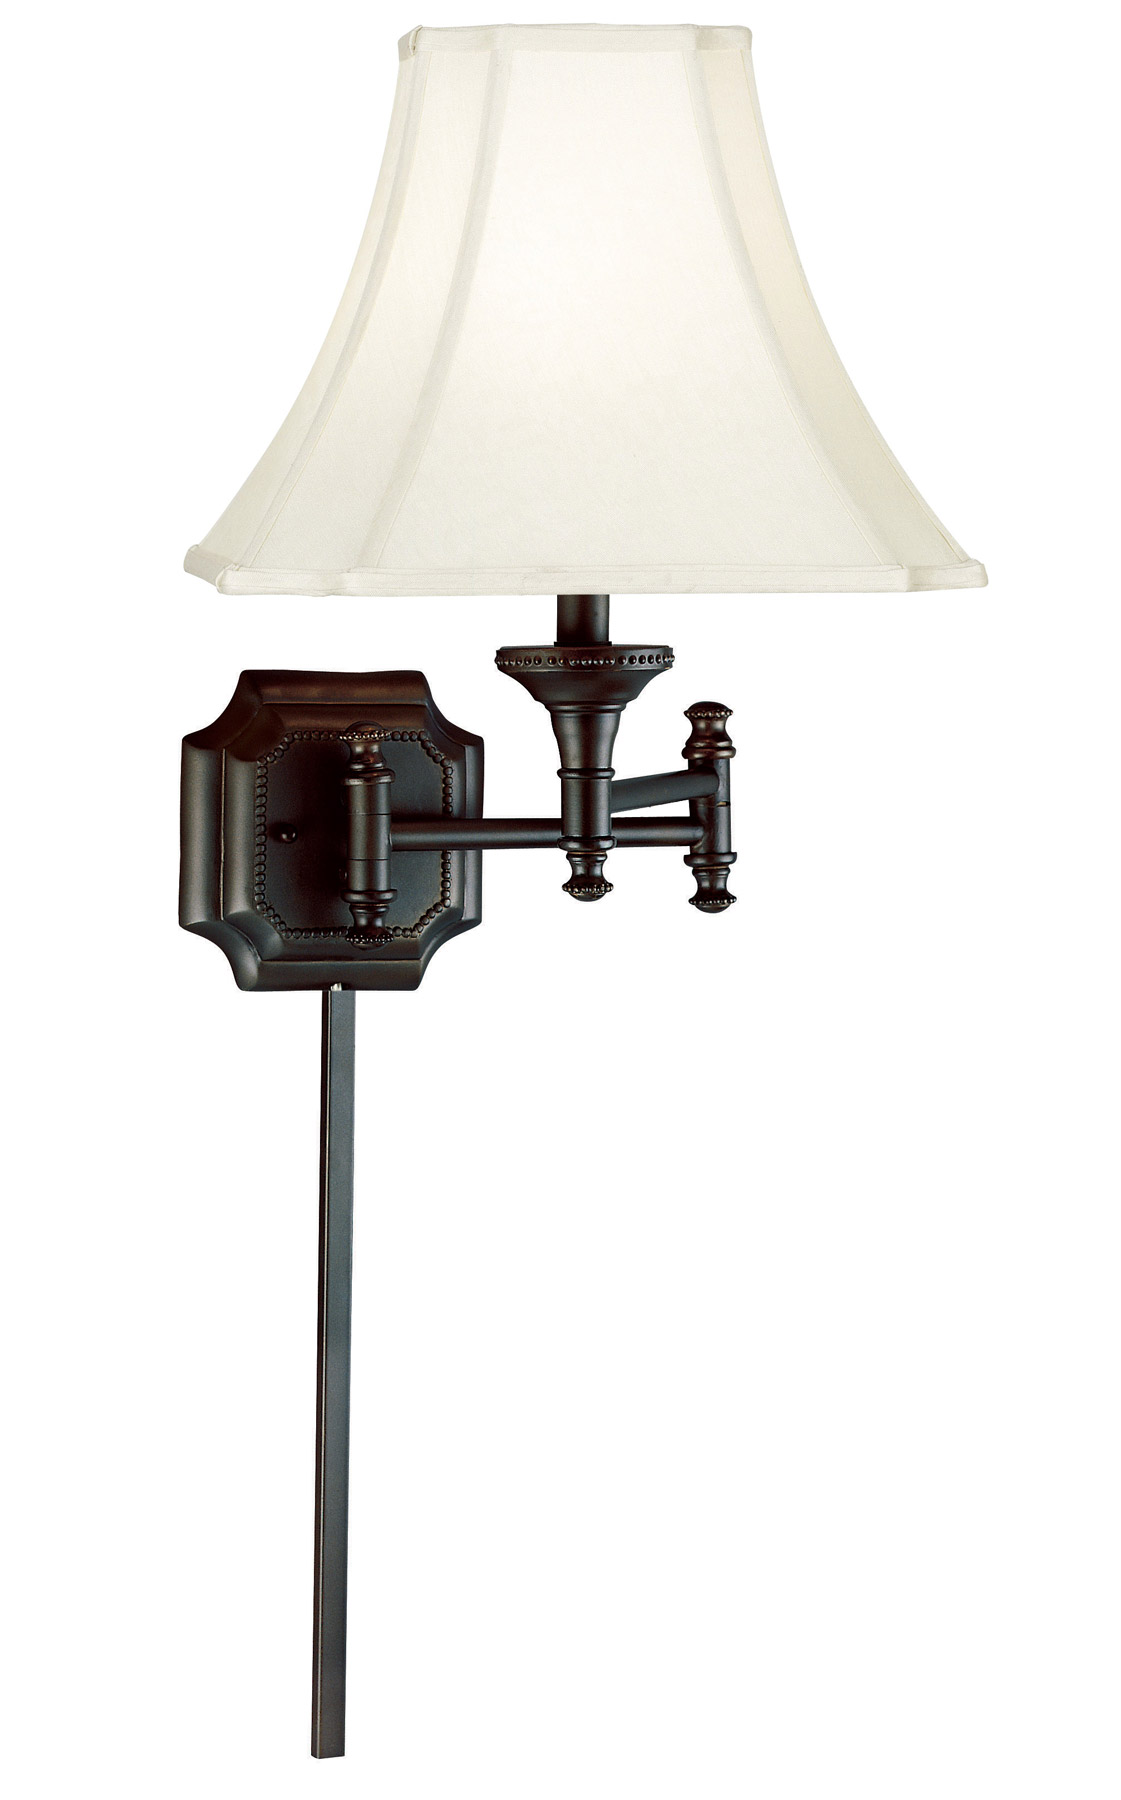 Kenroy Home Wall Lamps : Kenroy Home 33054BBZ Wentworth Swing Arm Wall Lamp